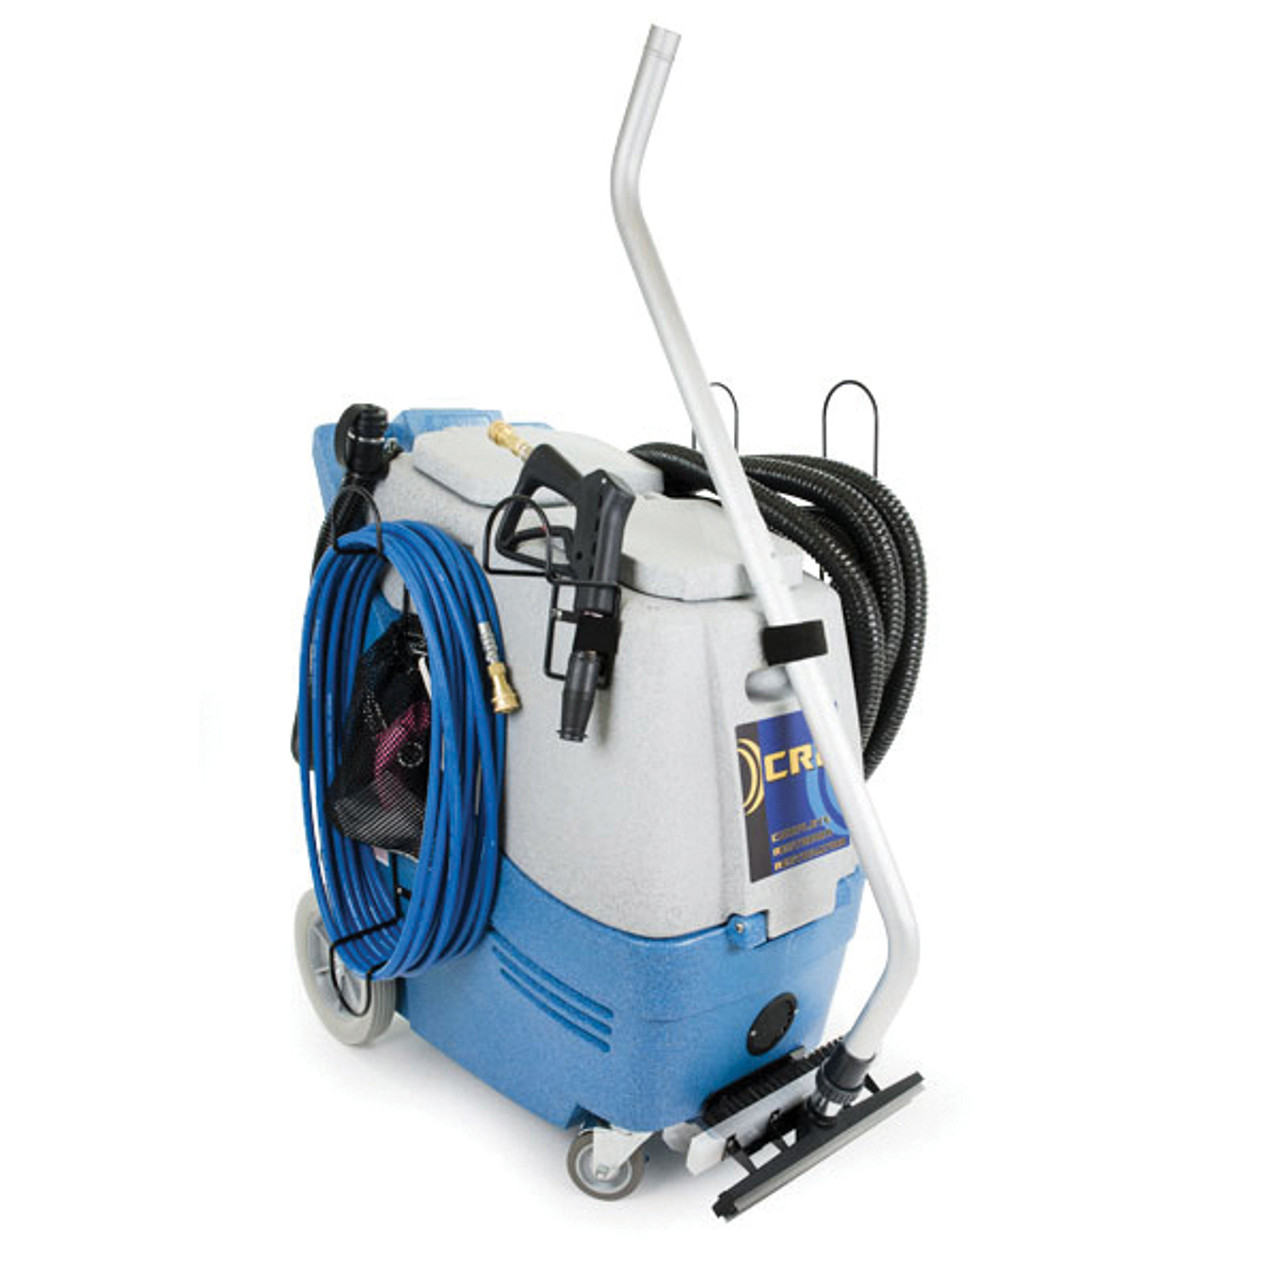 The CR2 from EDIC simplifies restroom cleaning for professional cleaners and provides a proven touch-free cleaning system for unmatched cleaning results that you don't have to get your hands dirty to achieve.